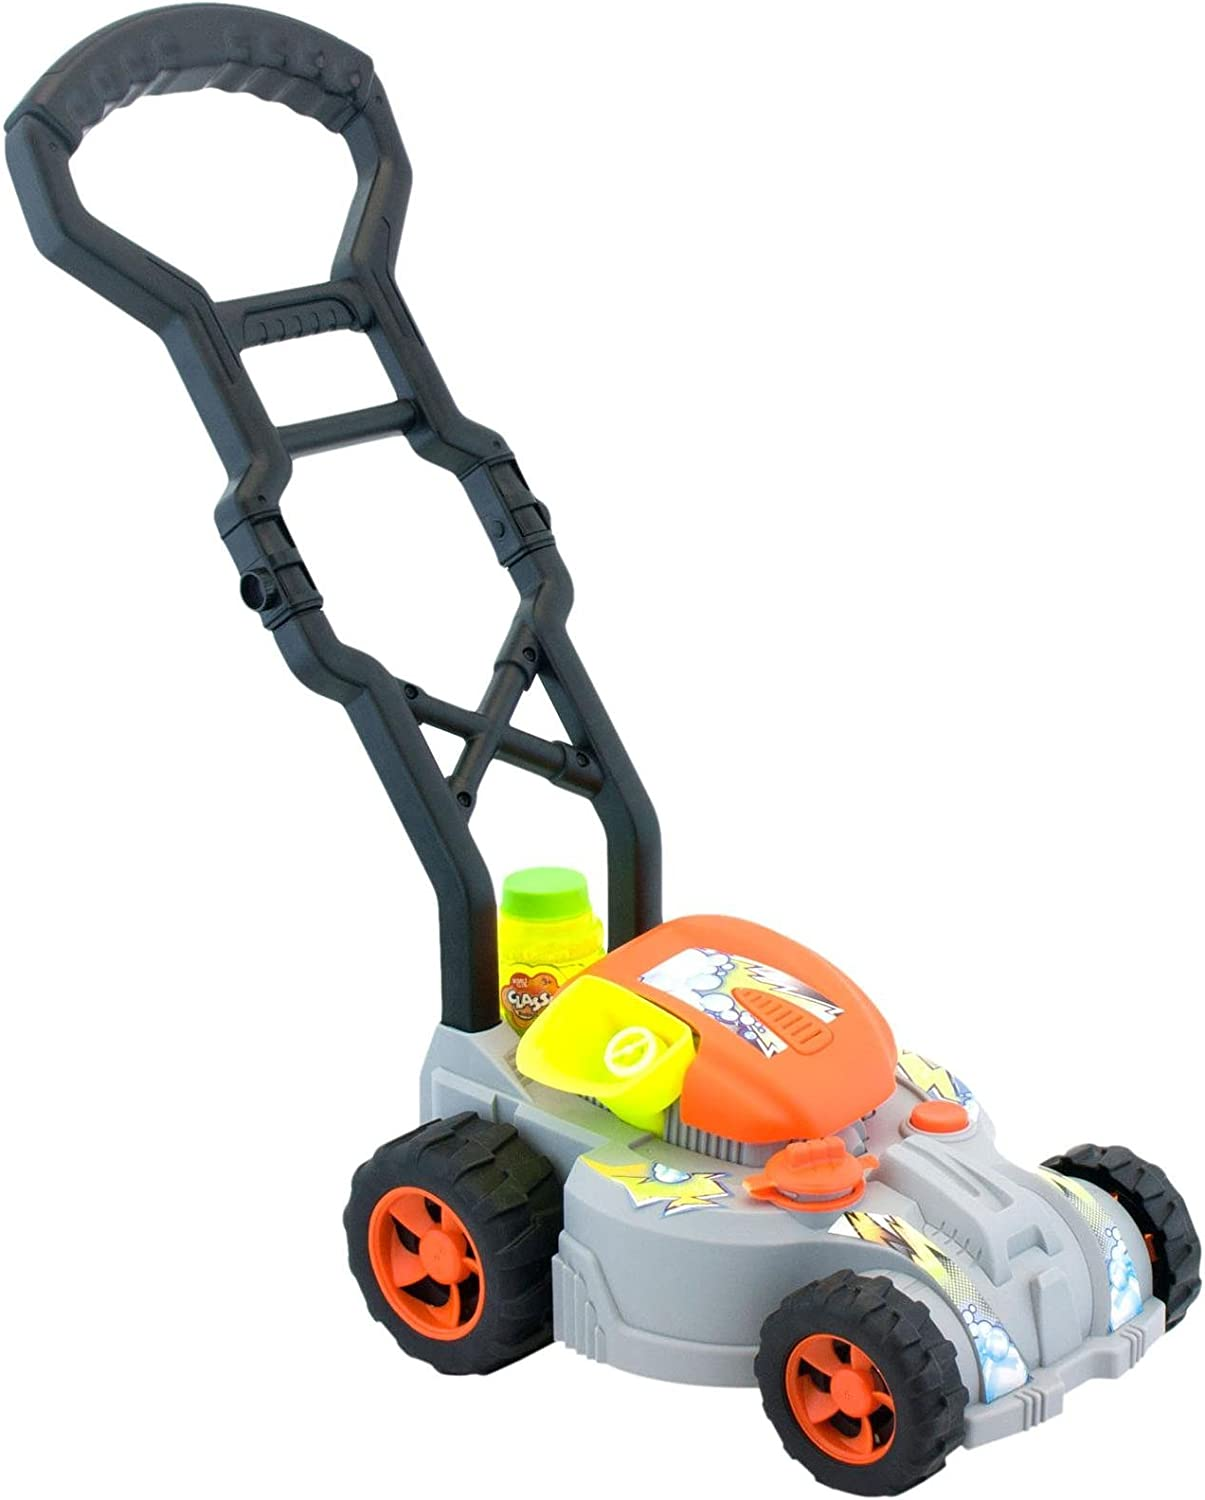 Top 7 Best Bubble Lawn Mower For Kids & Toddlers 2020 7